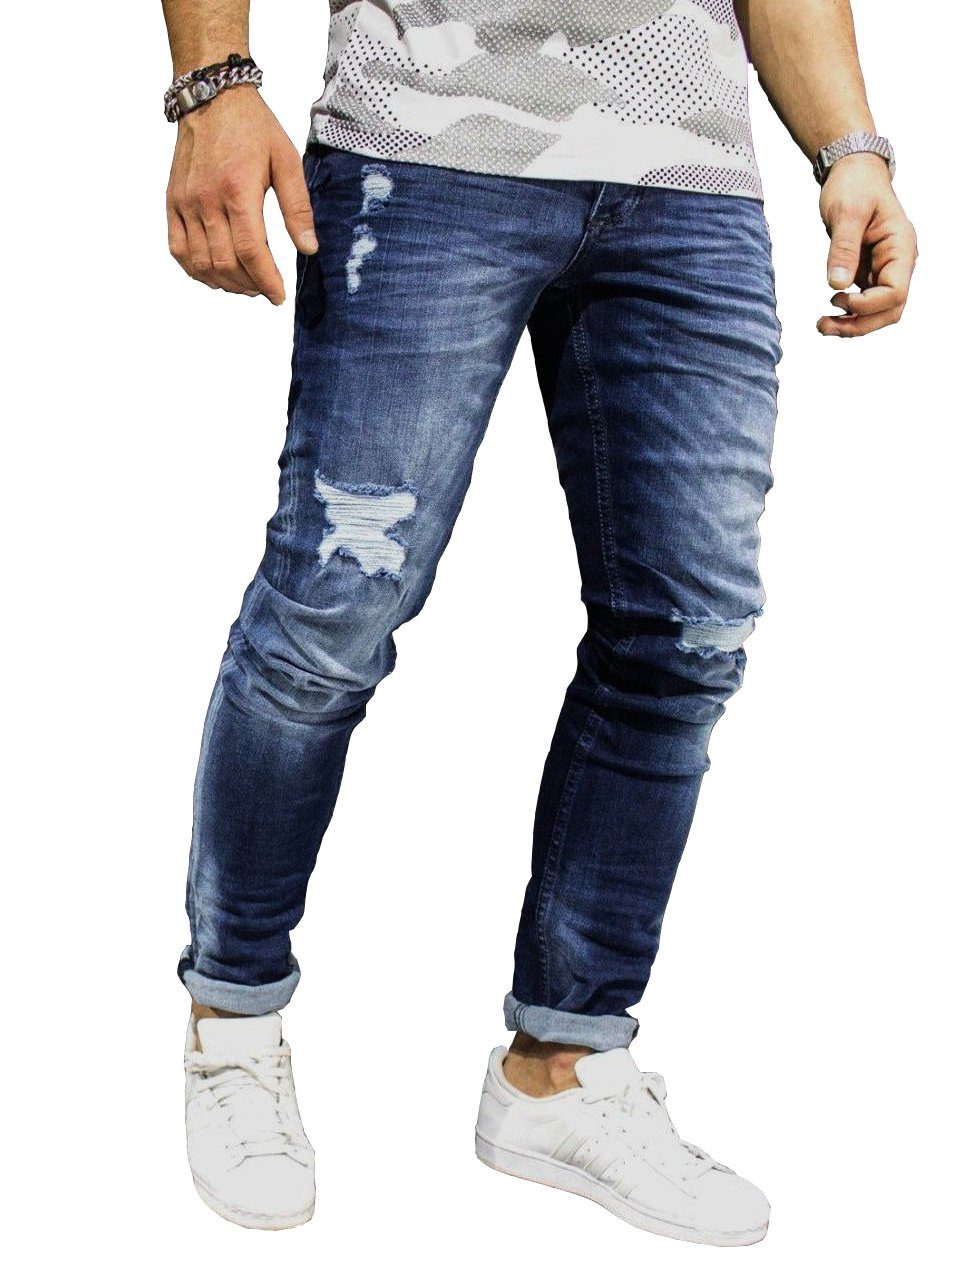 Men's Ripped Destroyed Jeans Slim Fit Distressed Denim Pants Trousers Blue003 34